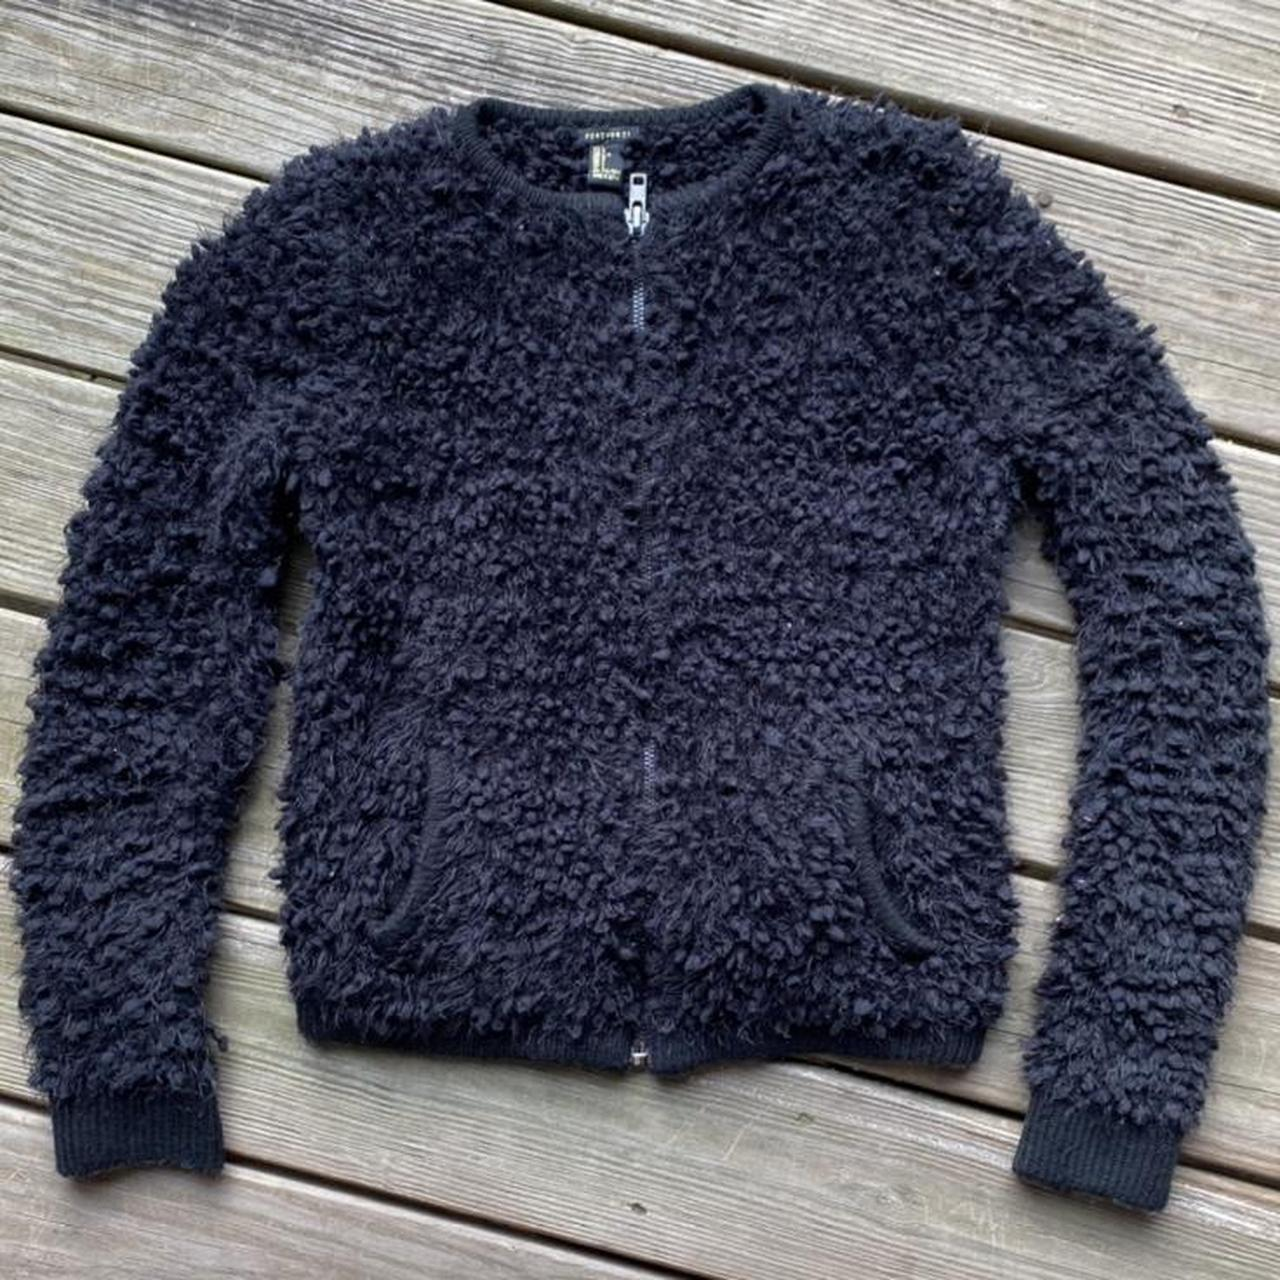 Product Image 1 - Fuzzy zip up jacket from